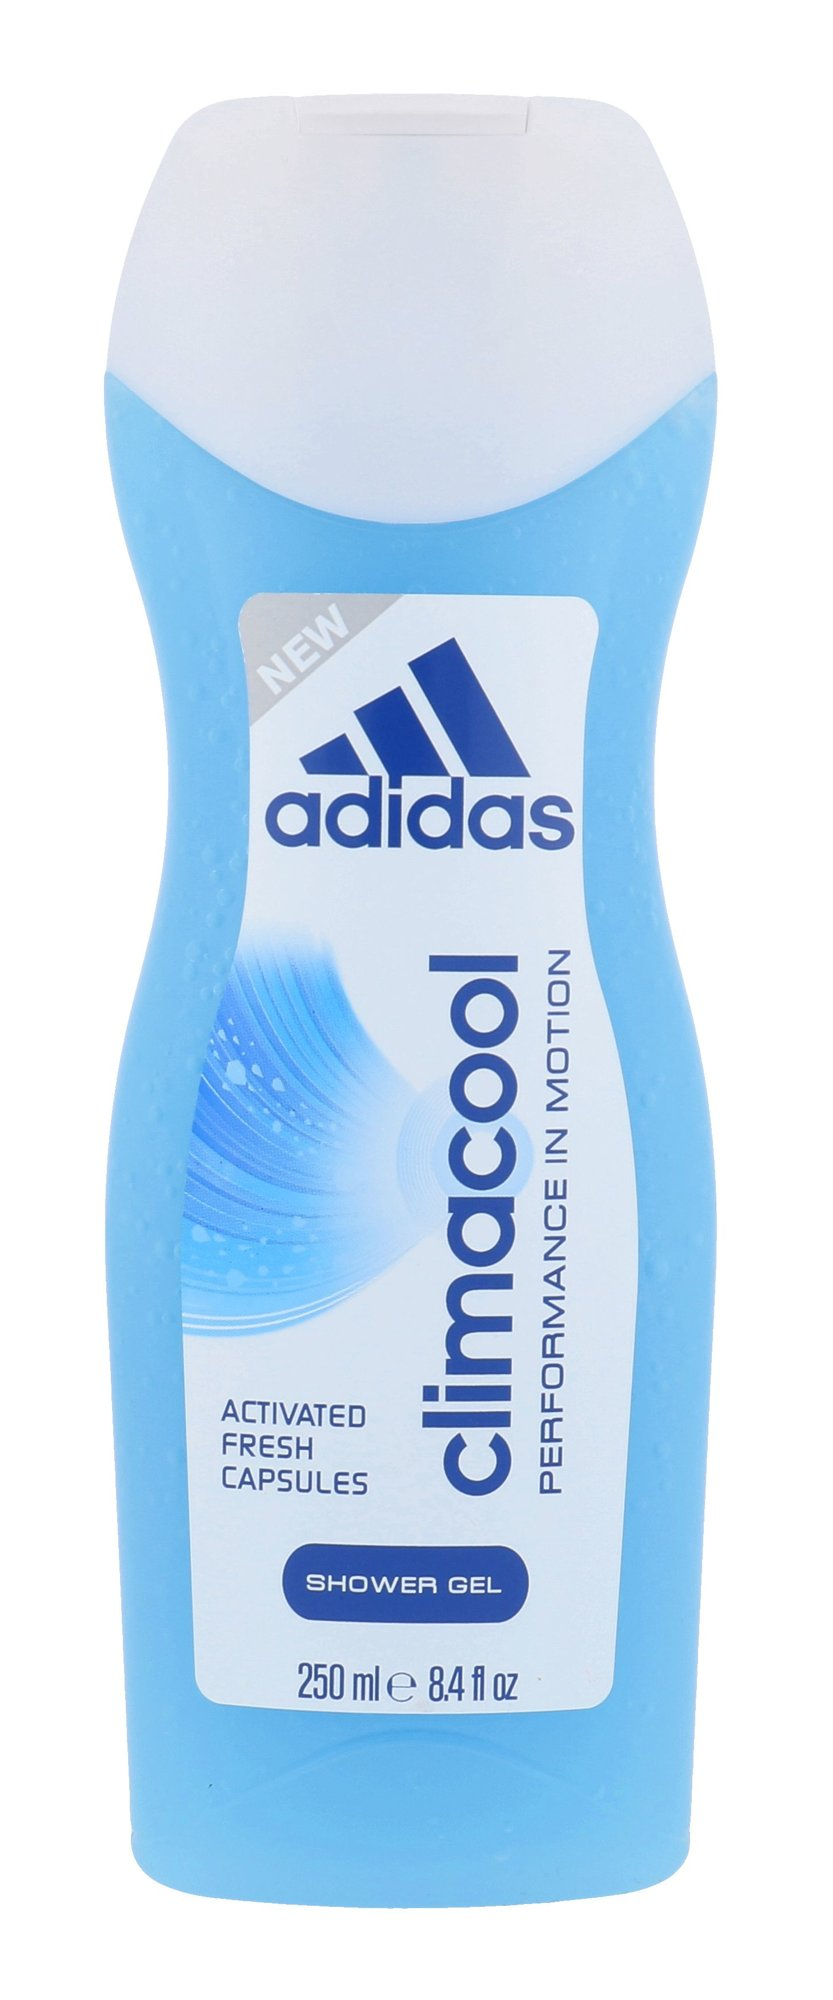 Adidas Climacool Shower gel 250ml